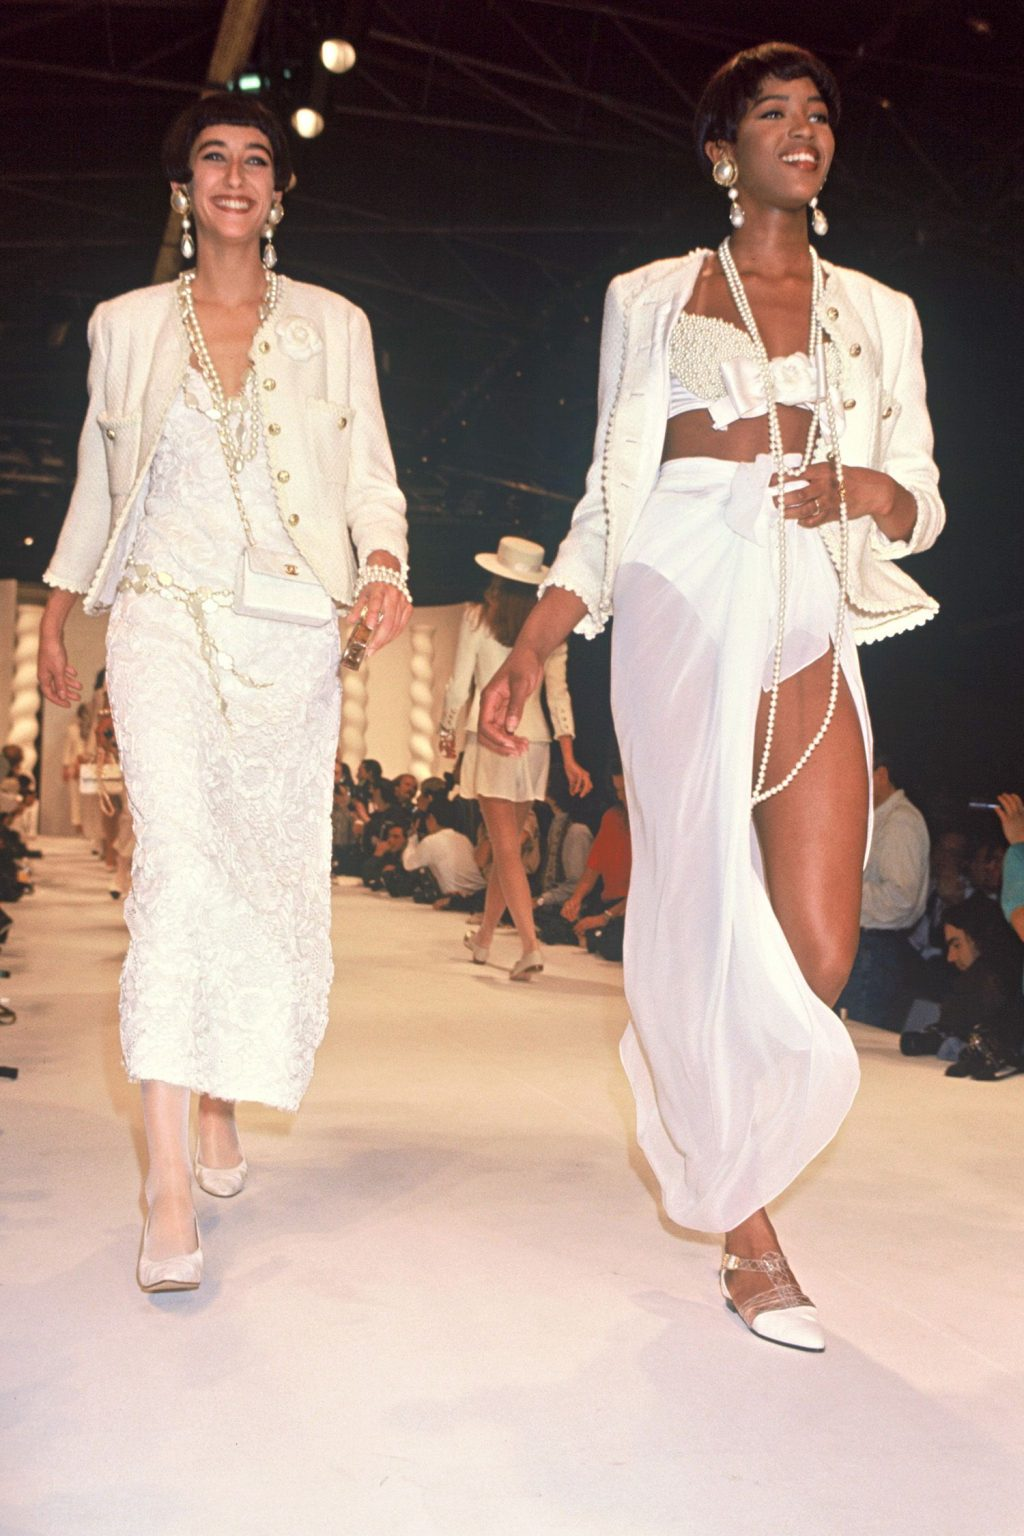 The Evolution of a Supermodel: Naomi Campbell